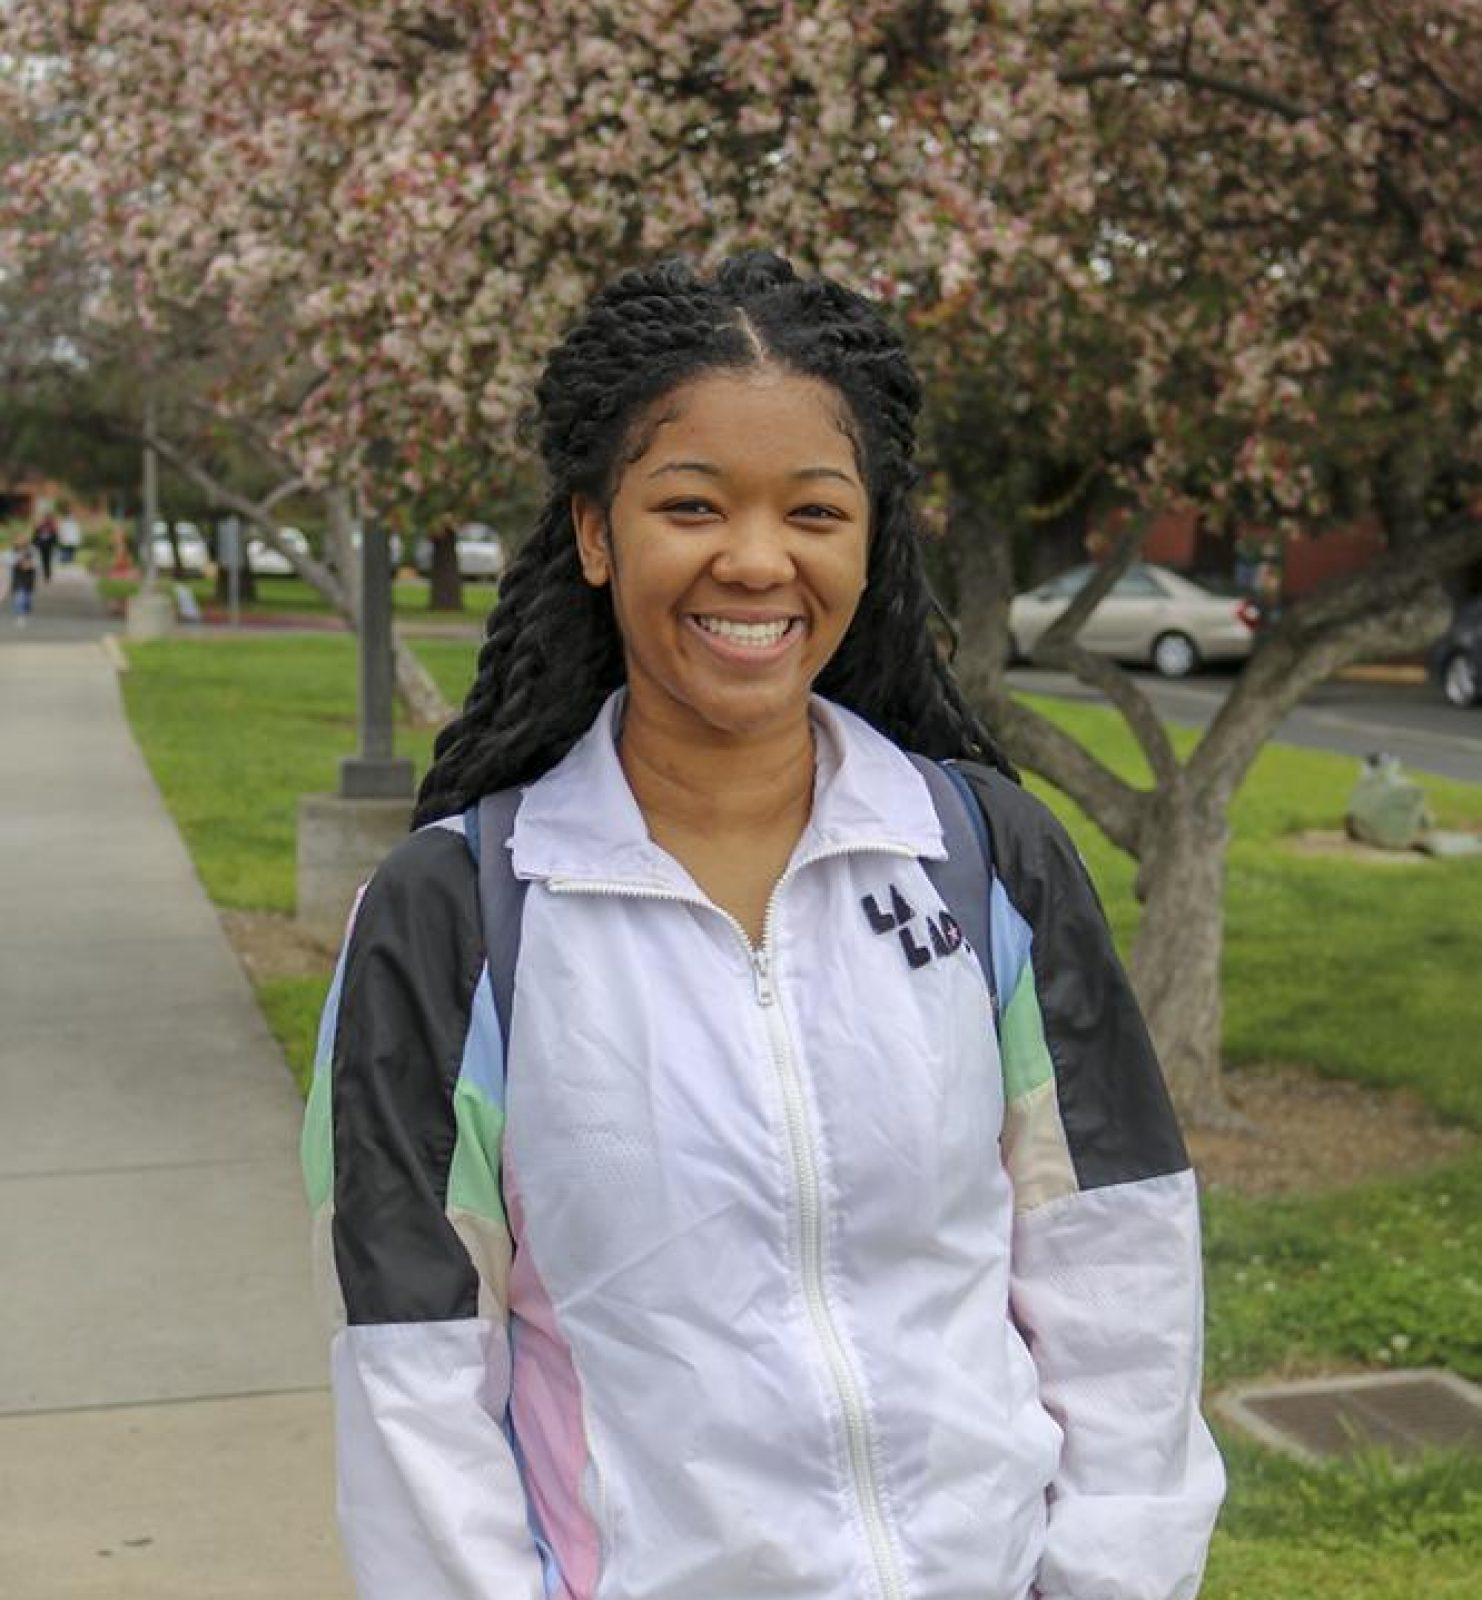 """I love that we have power, strength and that we can come together and unite."" – Khalila Duran 